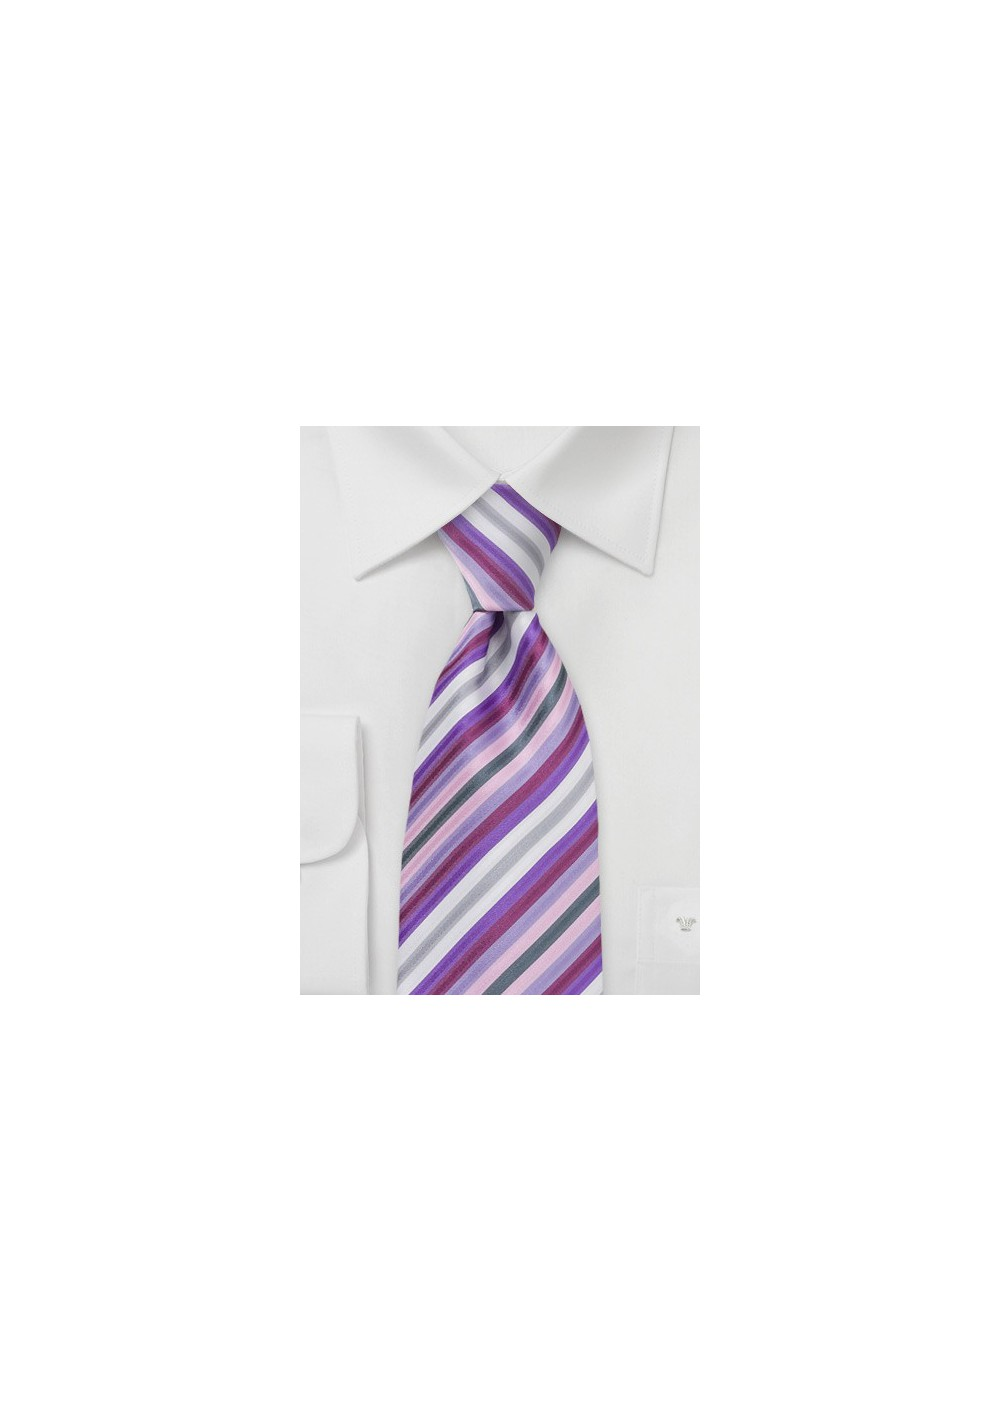 Lavender Purple Striped Tie